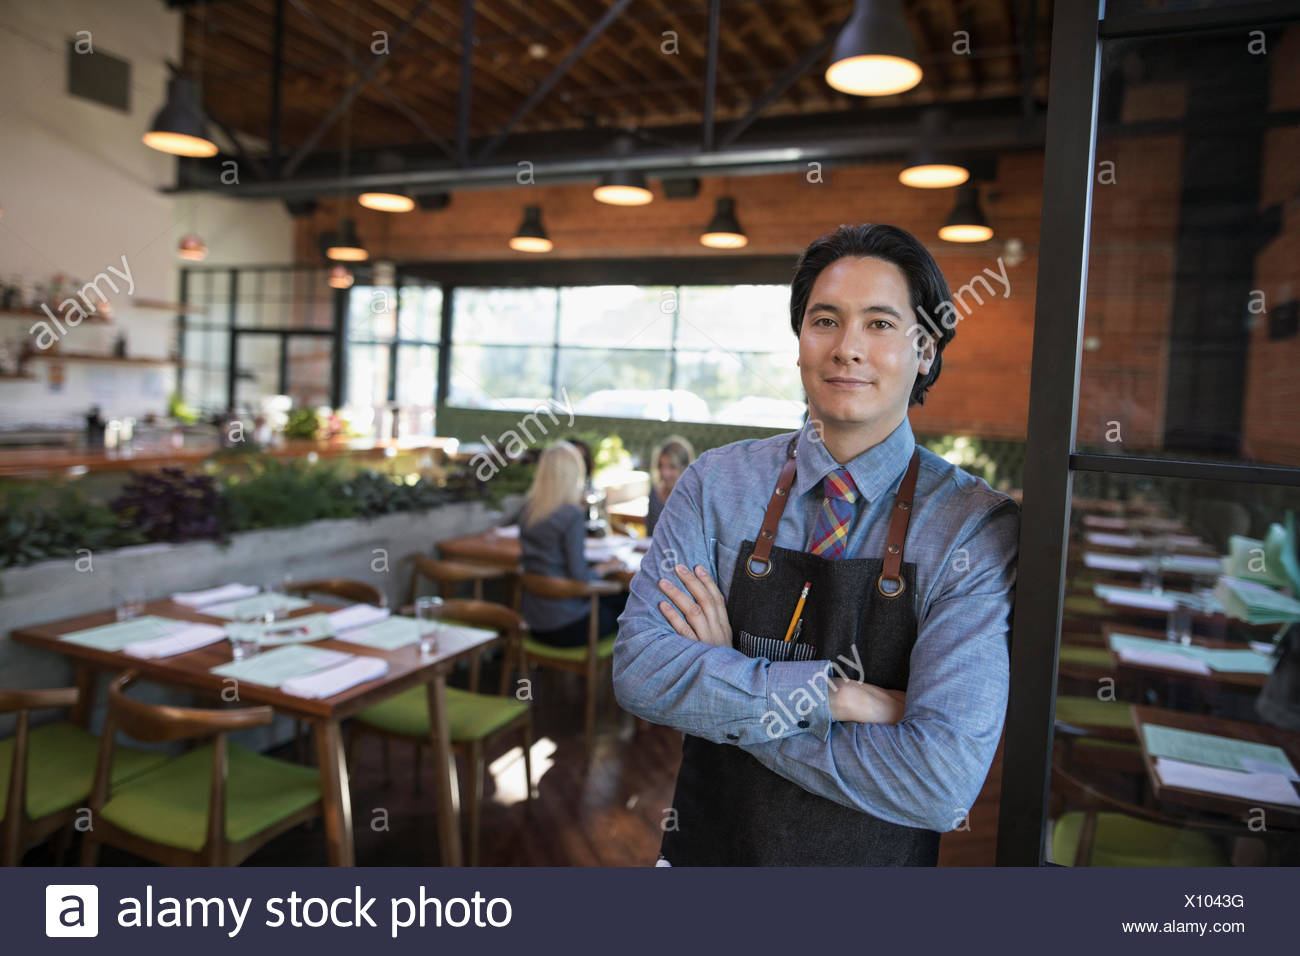 Portrait confident male server with arms crossed in restaurant - Stock Image